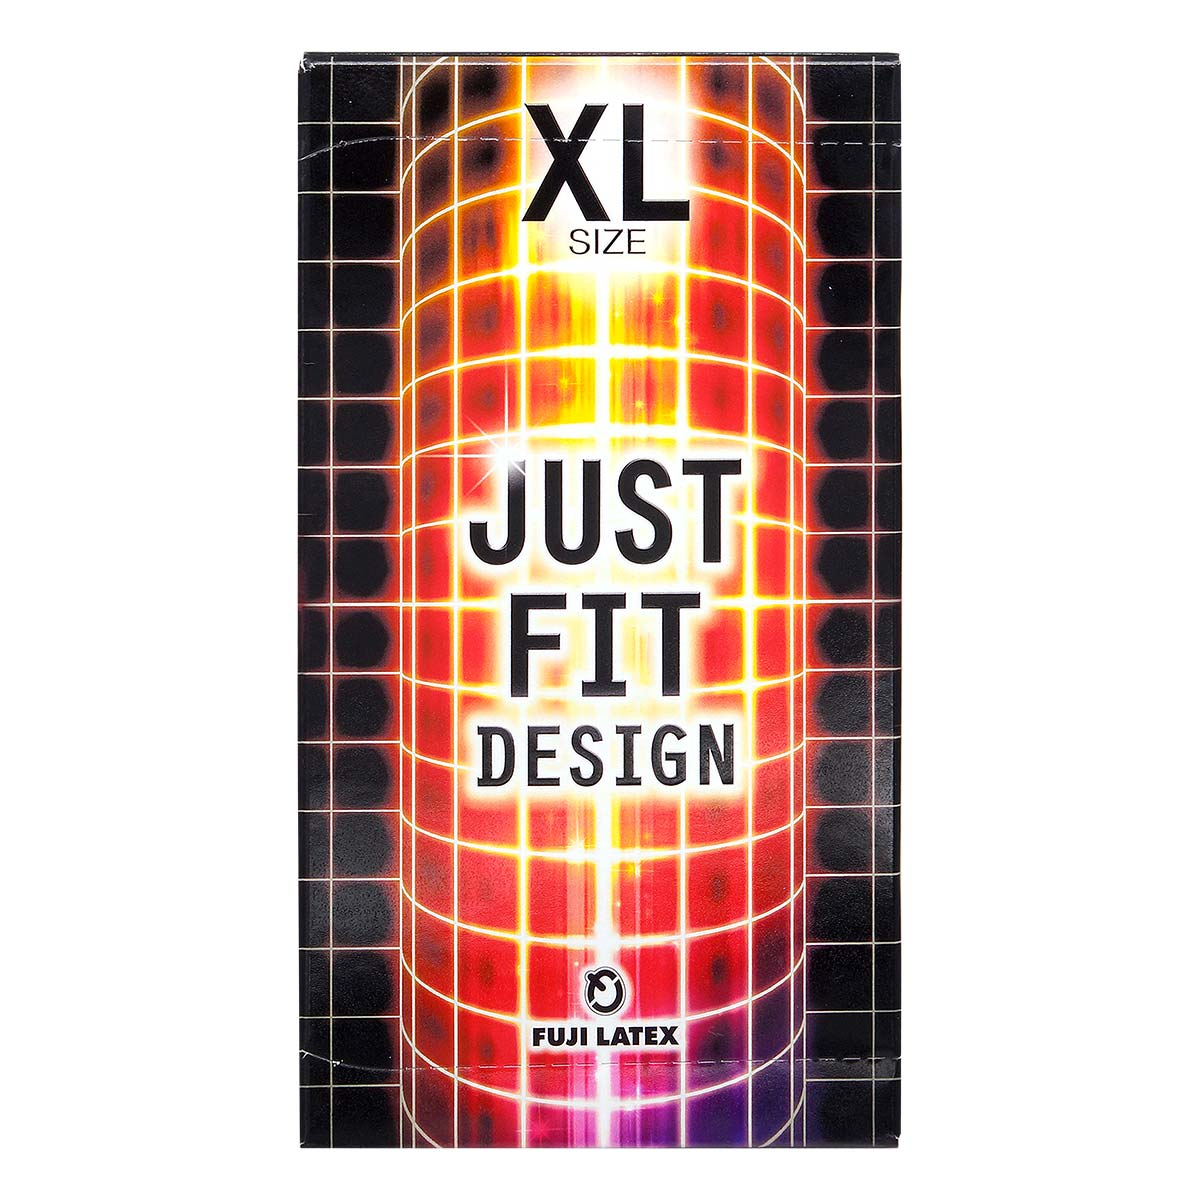 Just Fit - X-Large Size 66/56mm 12's Pack Latex Condom